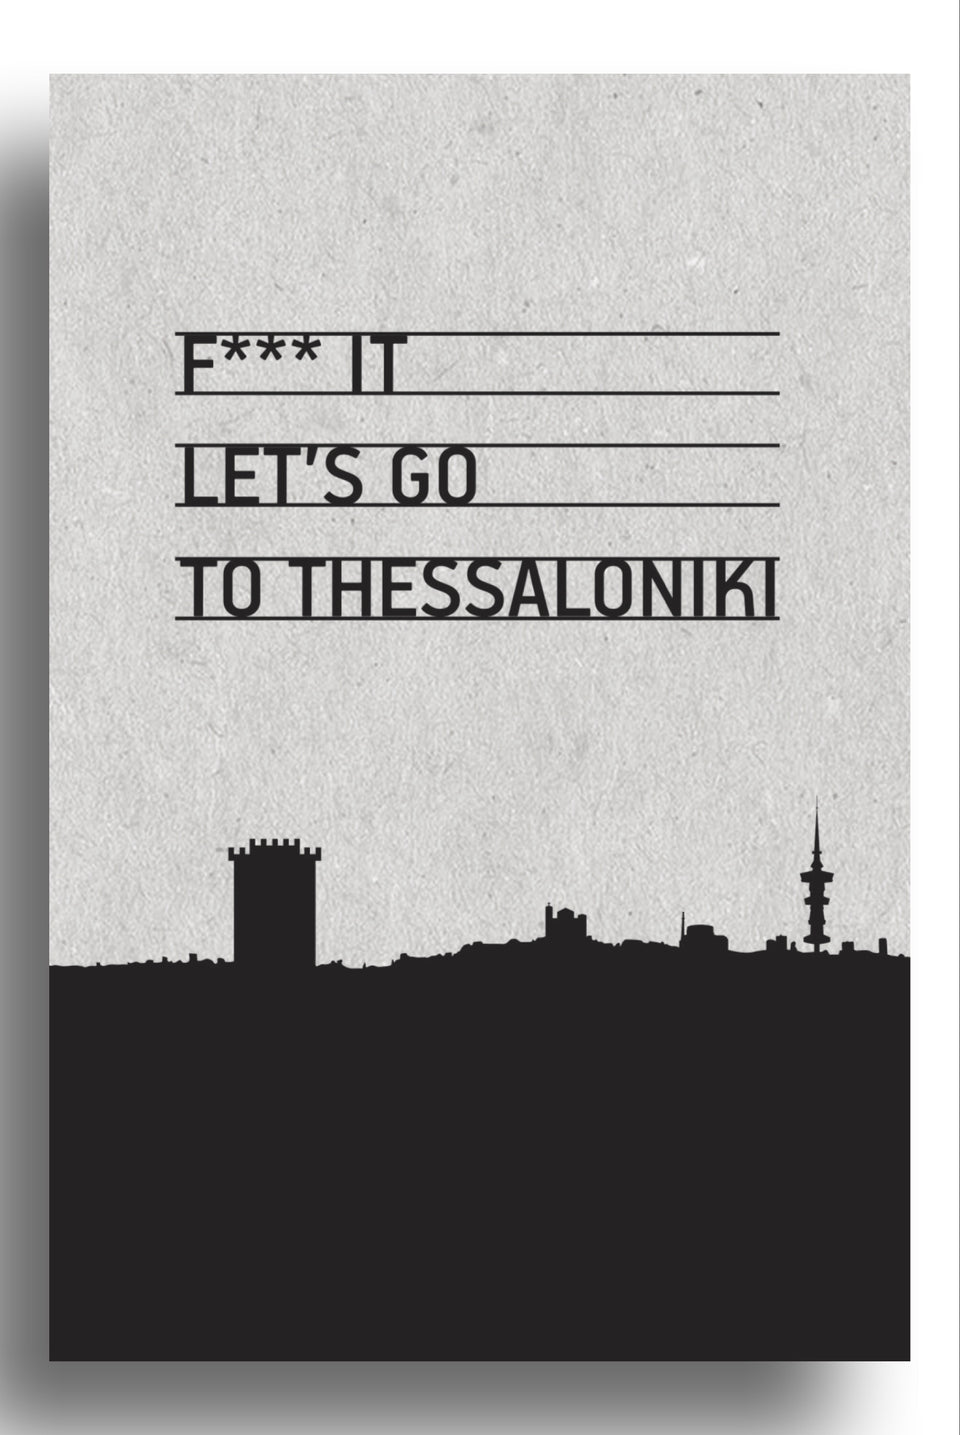 F**k let's go to Thessaloniki | art print